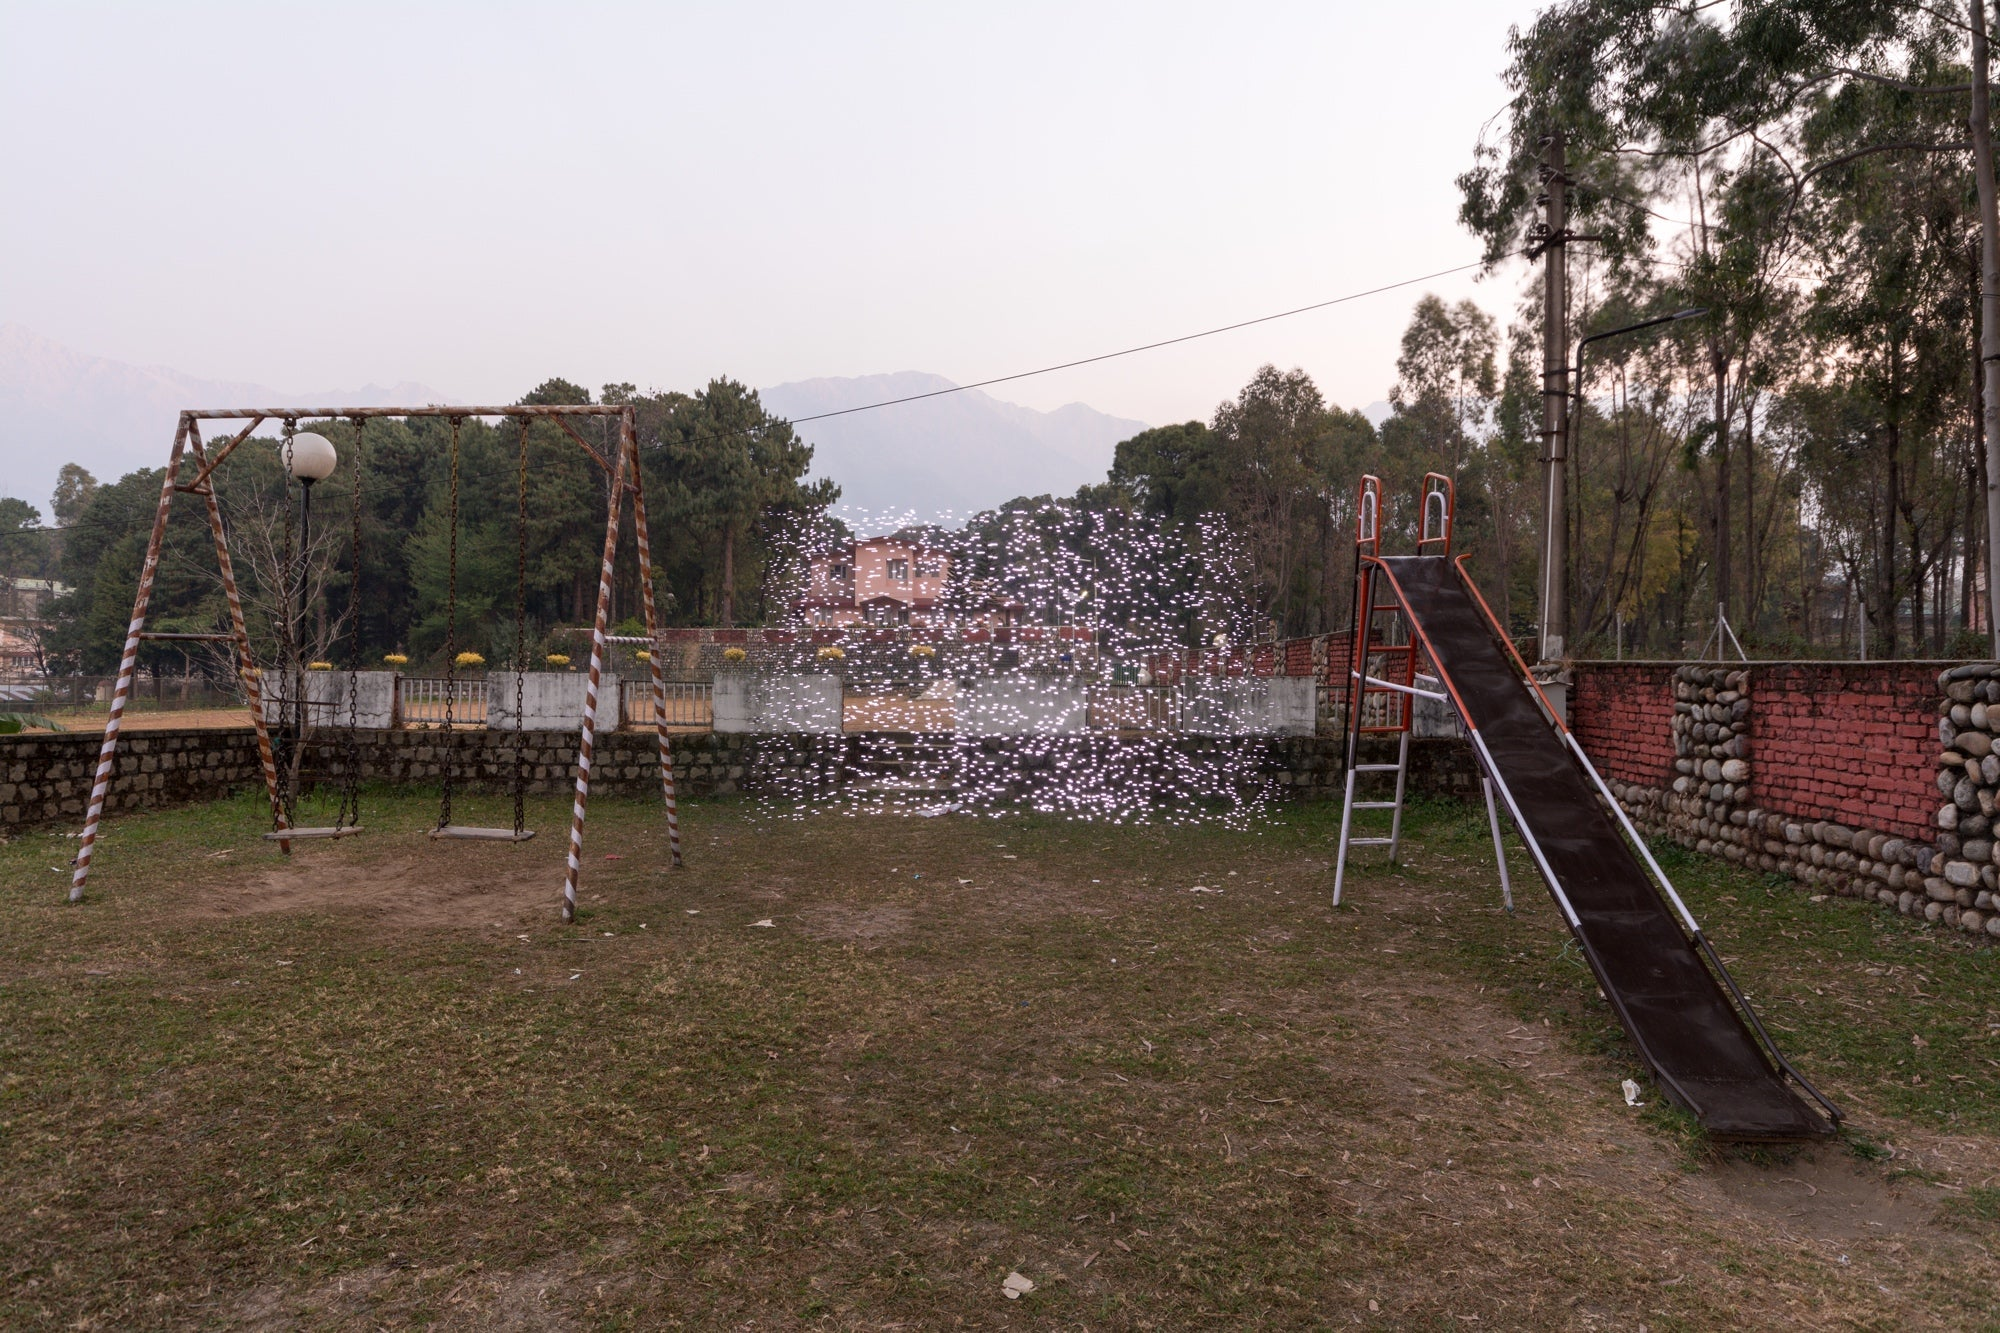 Playground at the Institute of Himalayan Biotechnology, Palampur, India - PM2.5 30 - 40 micrograms per cubic meter